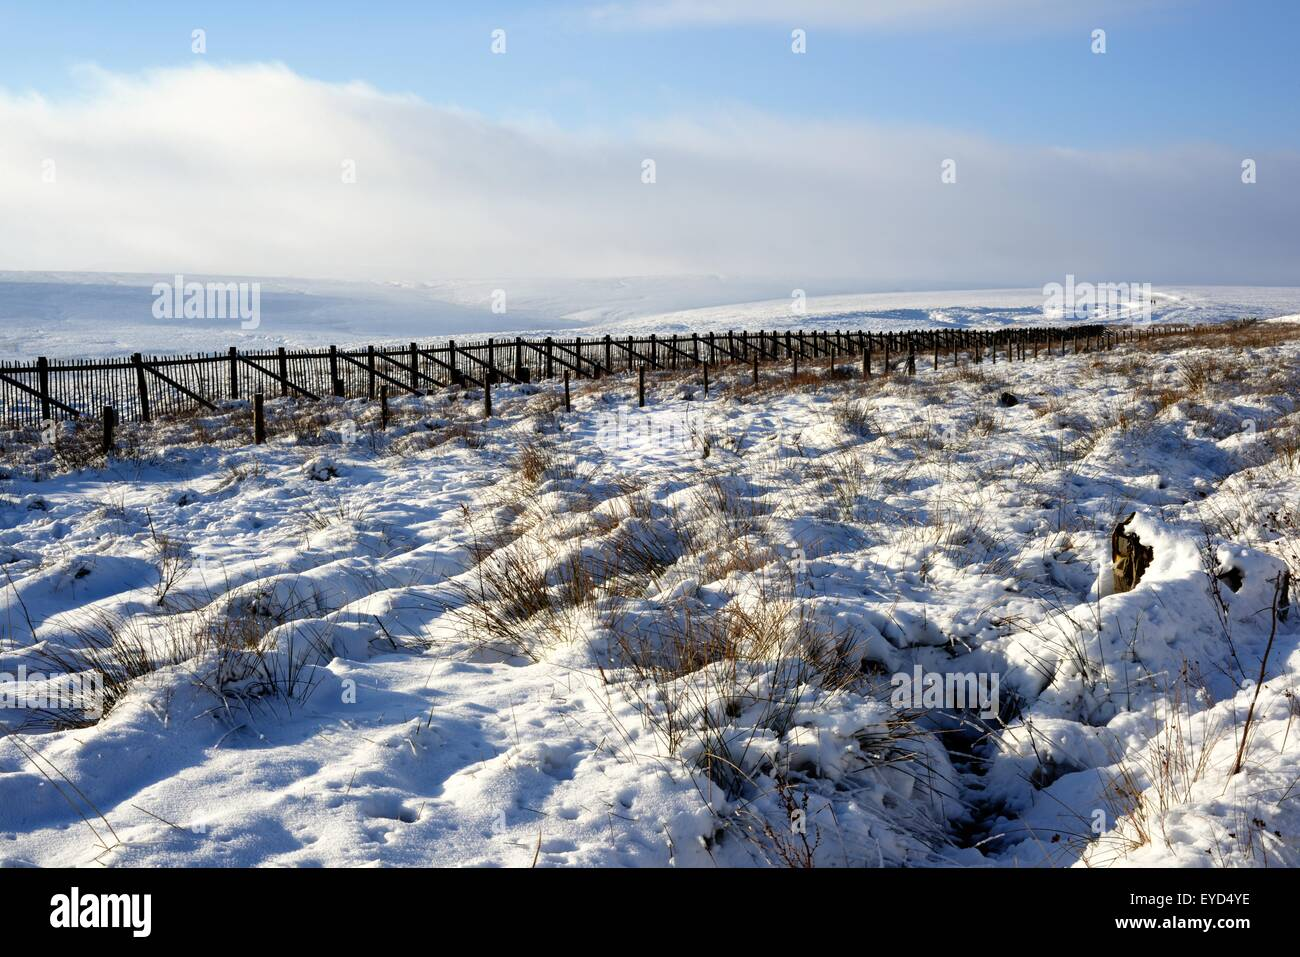 A snowy scene in the Pennine Hills, the backbone of Northern England. - Stock Image